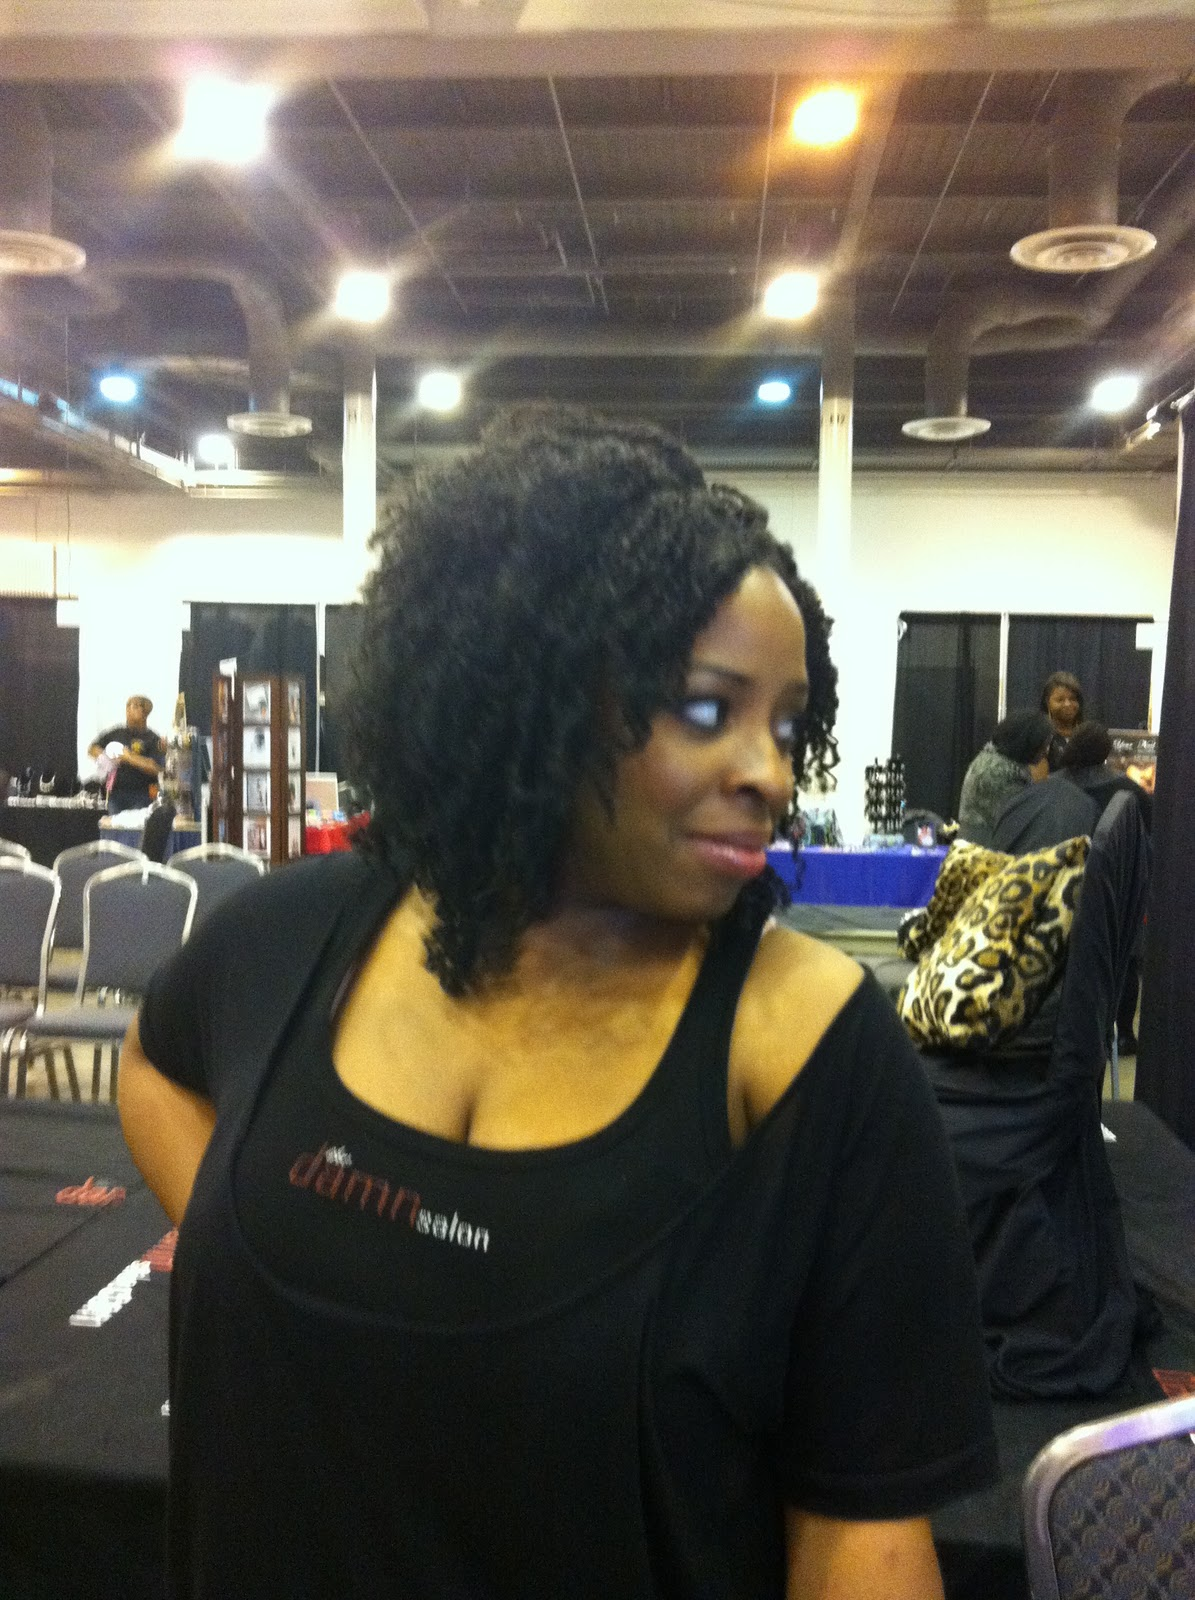 Roots don 39 t lie nzuri natural hair show december 10 11 2011 for Act ii salon salem nh